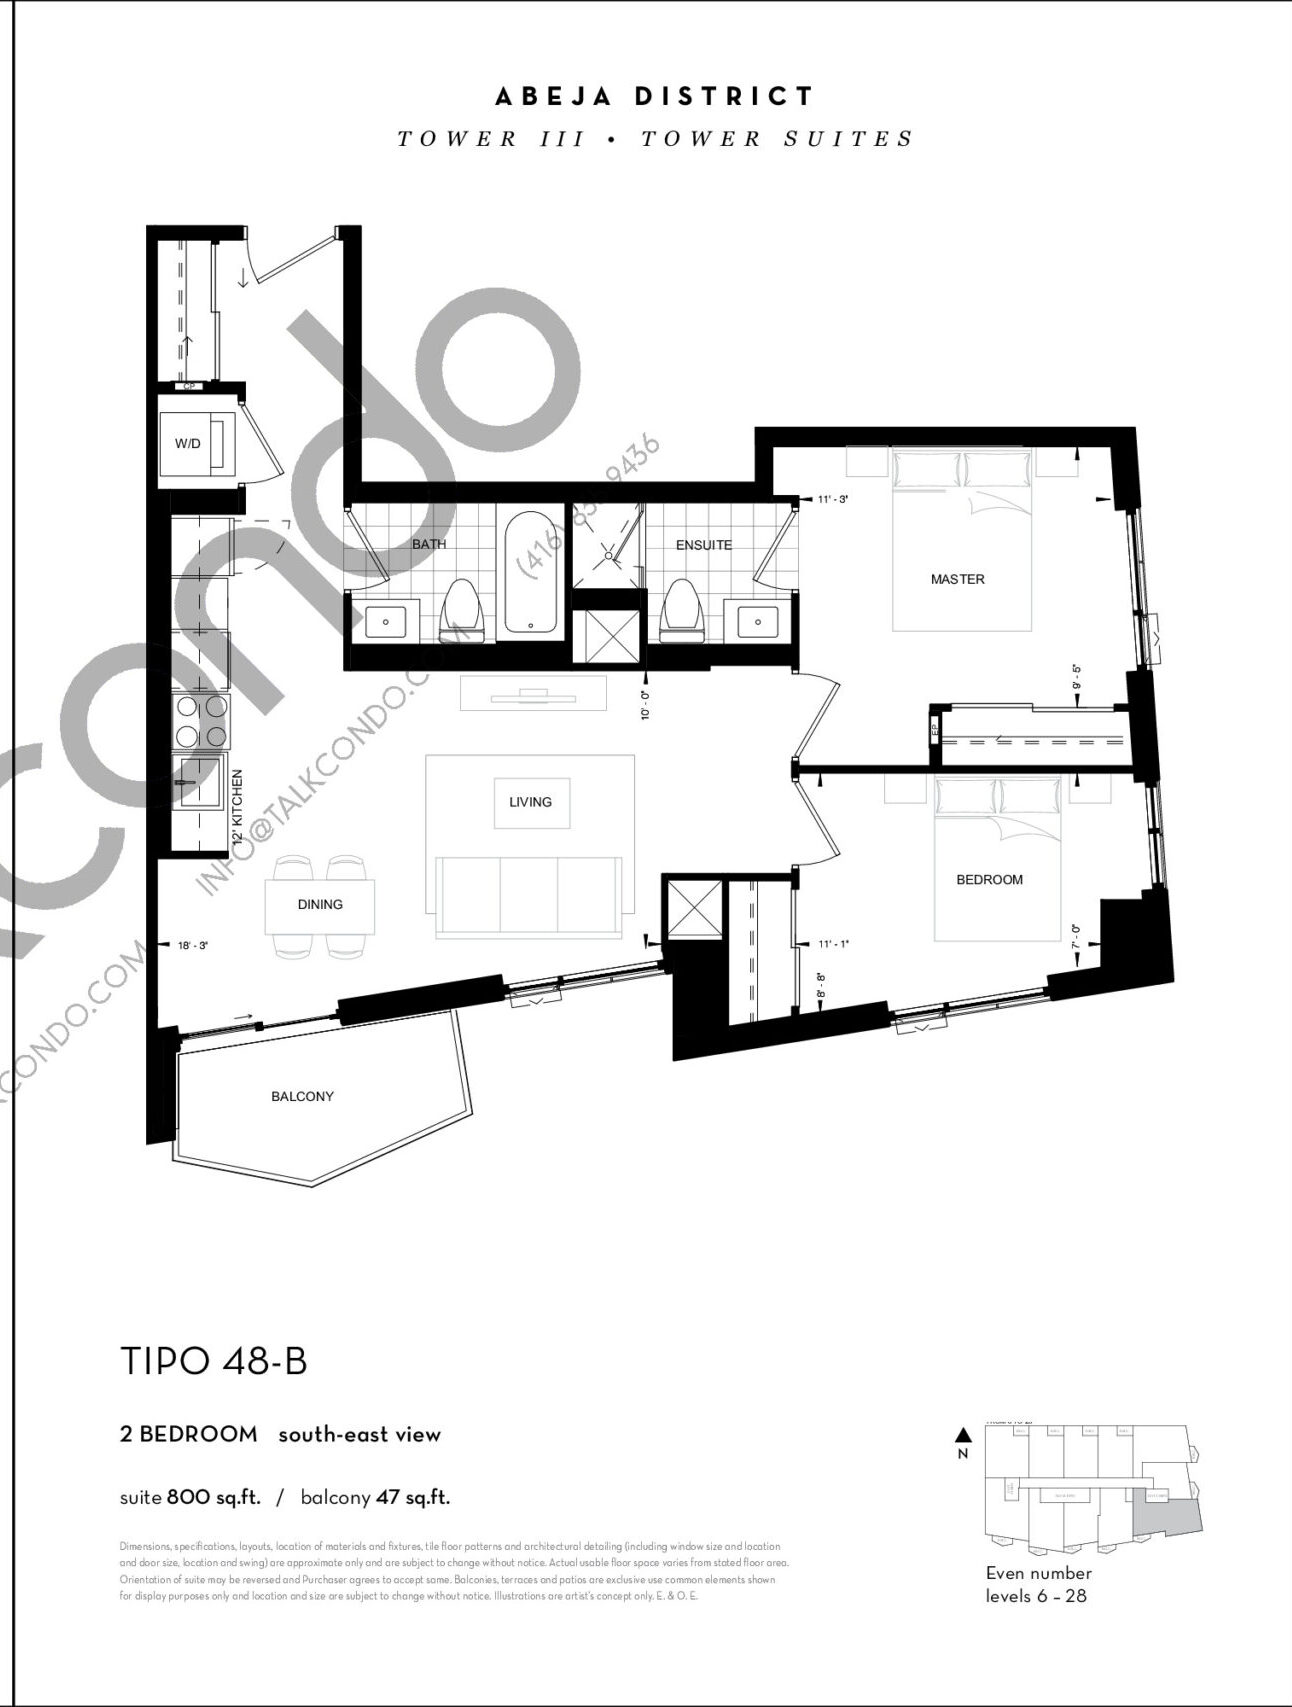 TIPO 48-B Floor Plan at Abeja District Condos Tower 3 - 800 sq.ft